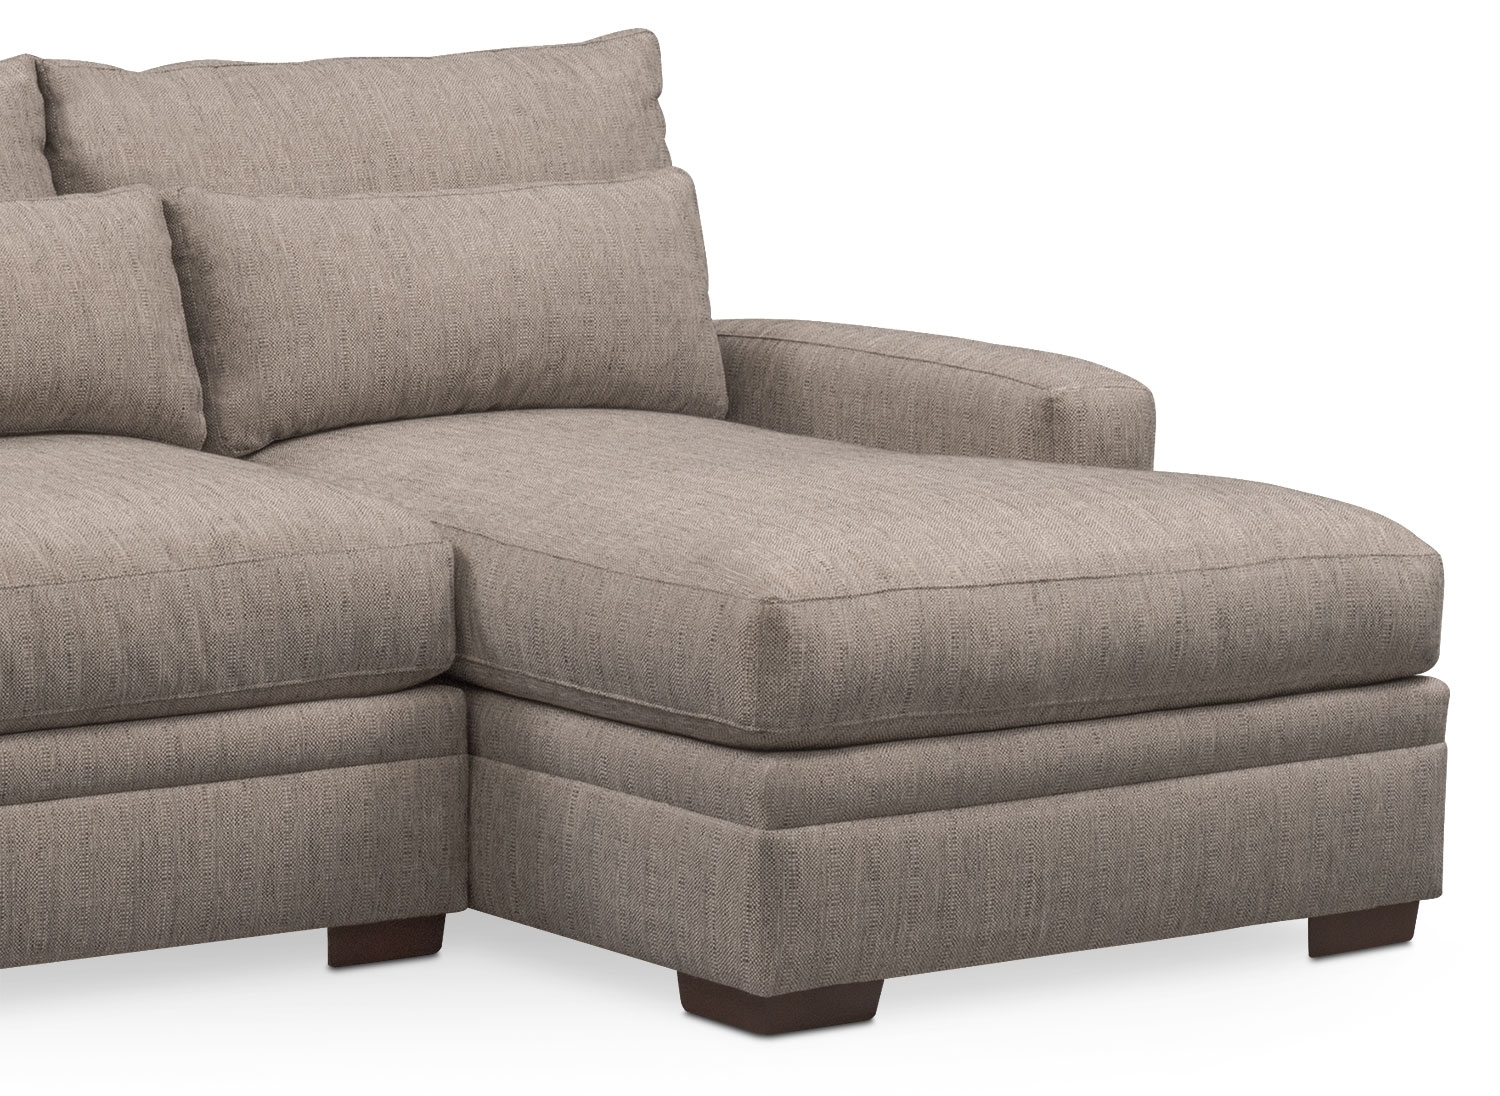 Vcf Sofa Chaise | Baci Living Room Intended For Mcdade Graphite 2 Piece Sectionals With Laf Chaise (Image 21 of 25)